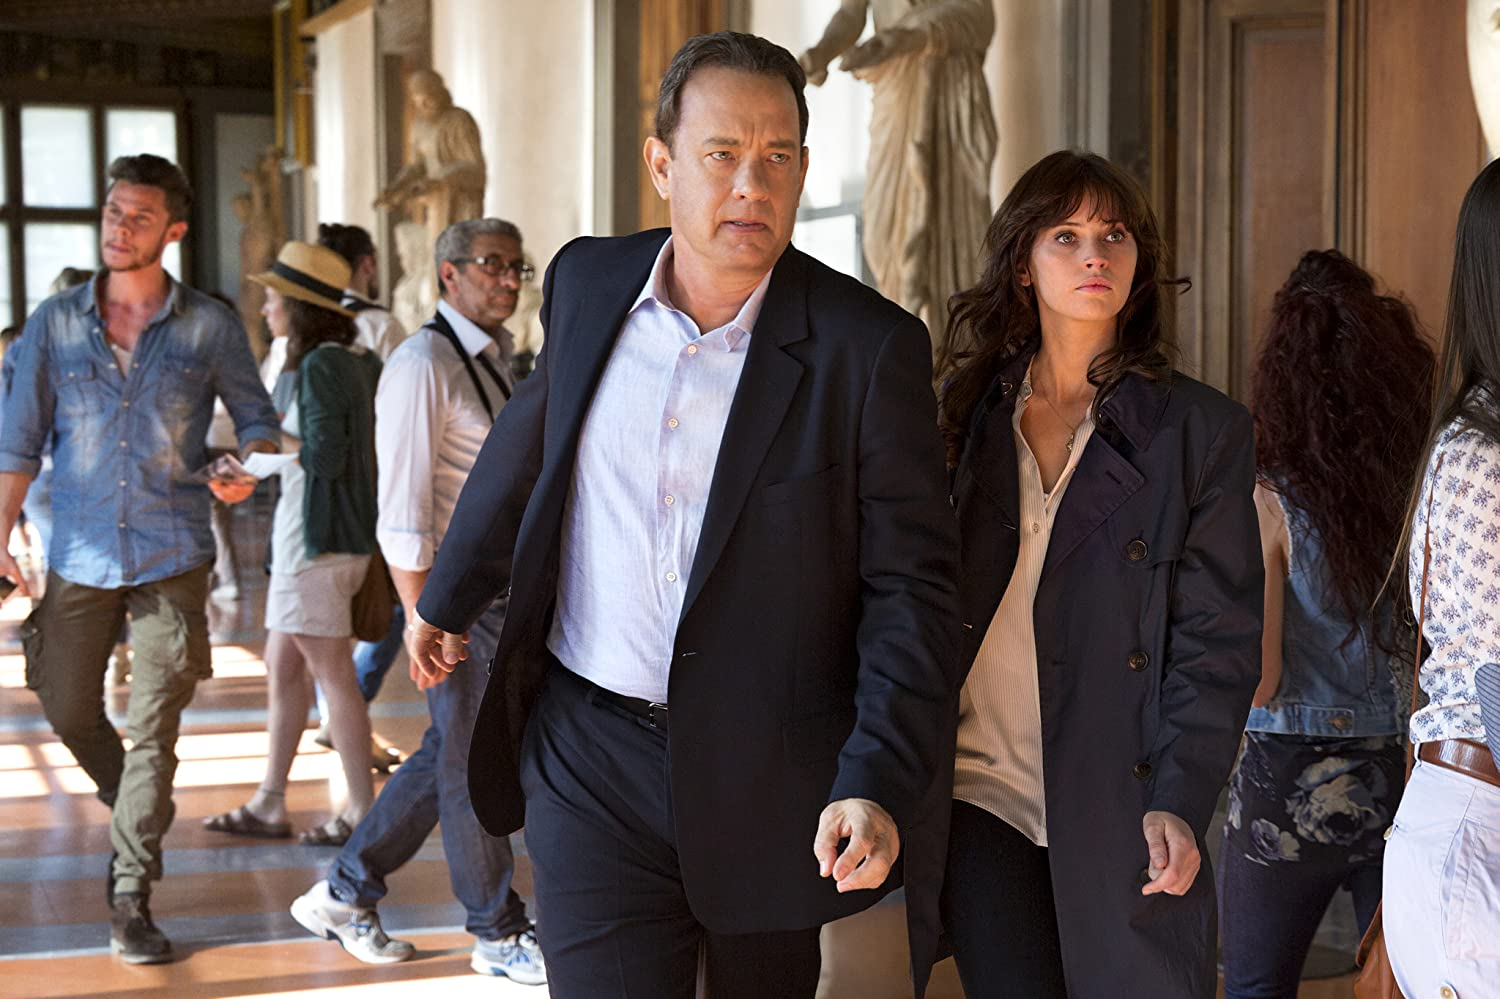 Inferno - A Feminist Review